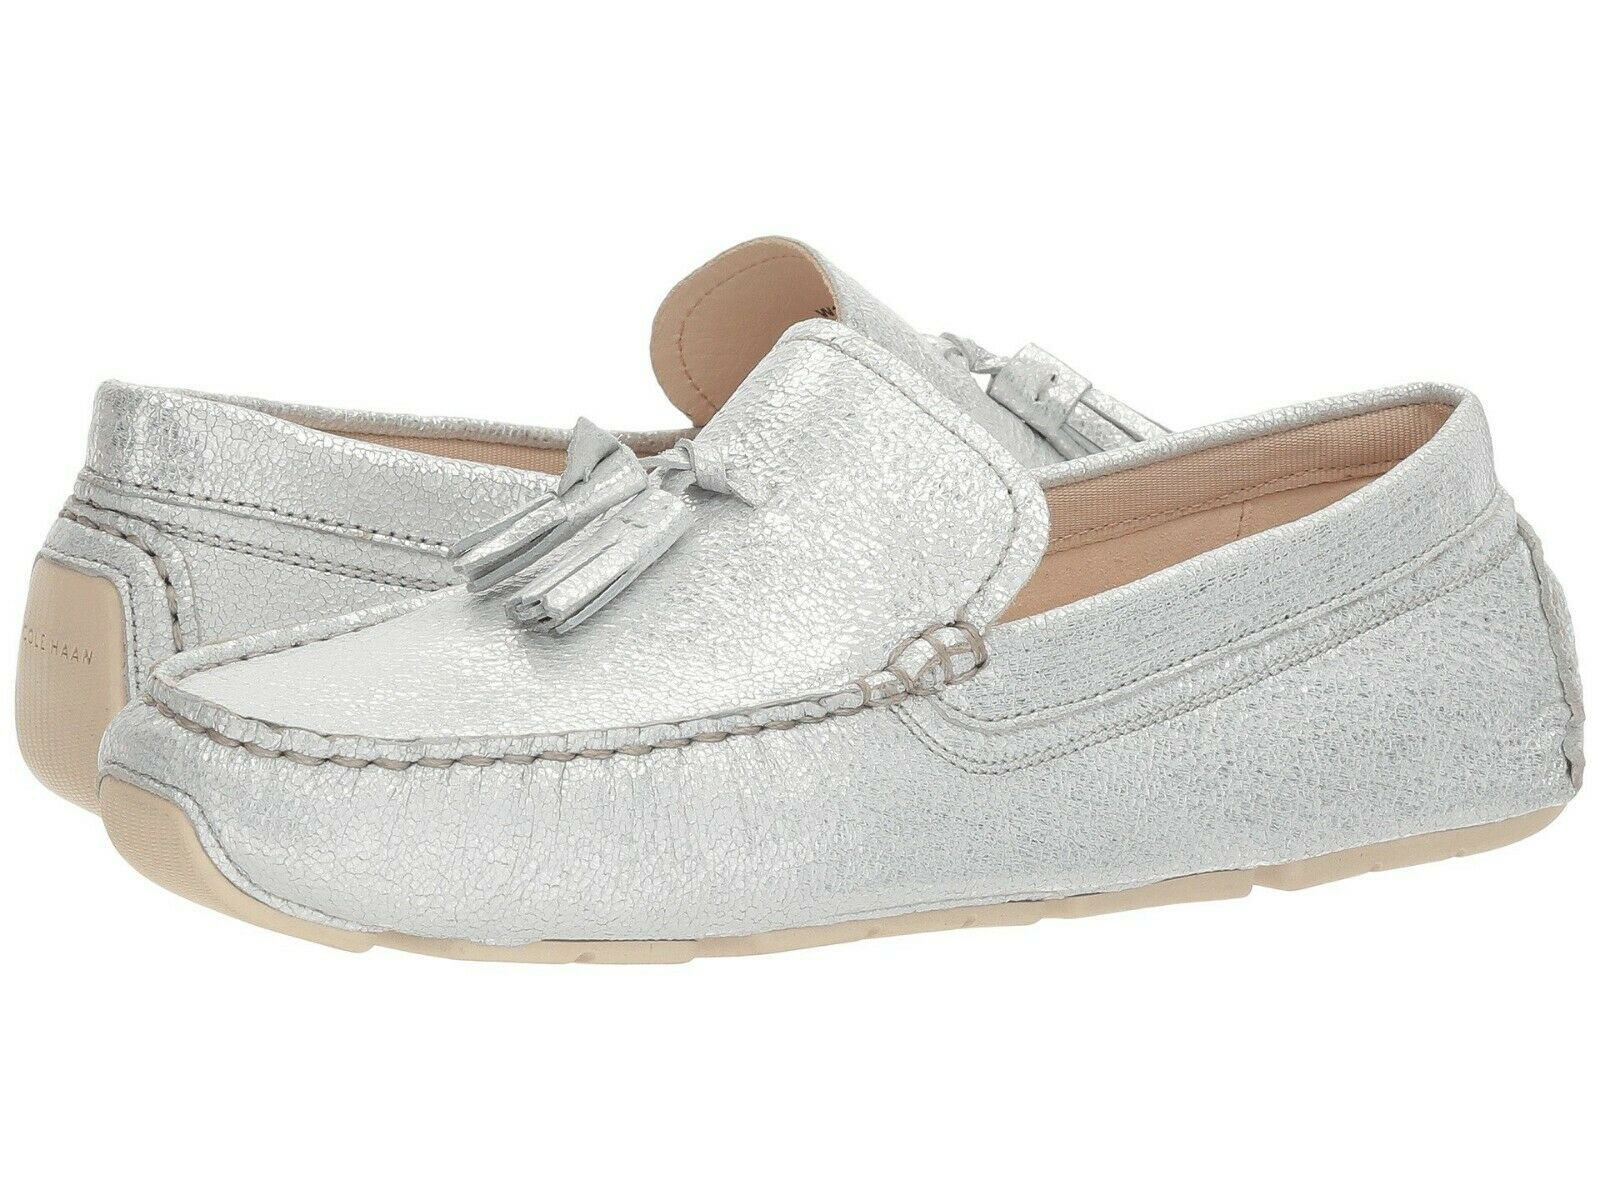 10.5M COLE HAAN HAAN HAAN RODEO TASSEL DRIVER GLITTER LEATHER WOMEN'S LOAFER SLIP ON SHOES 0b718b